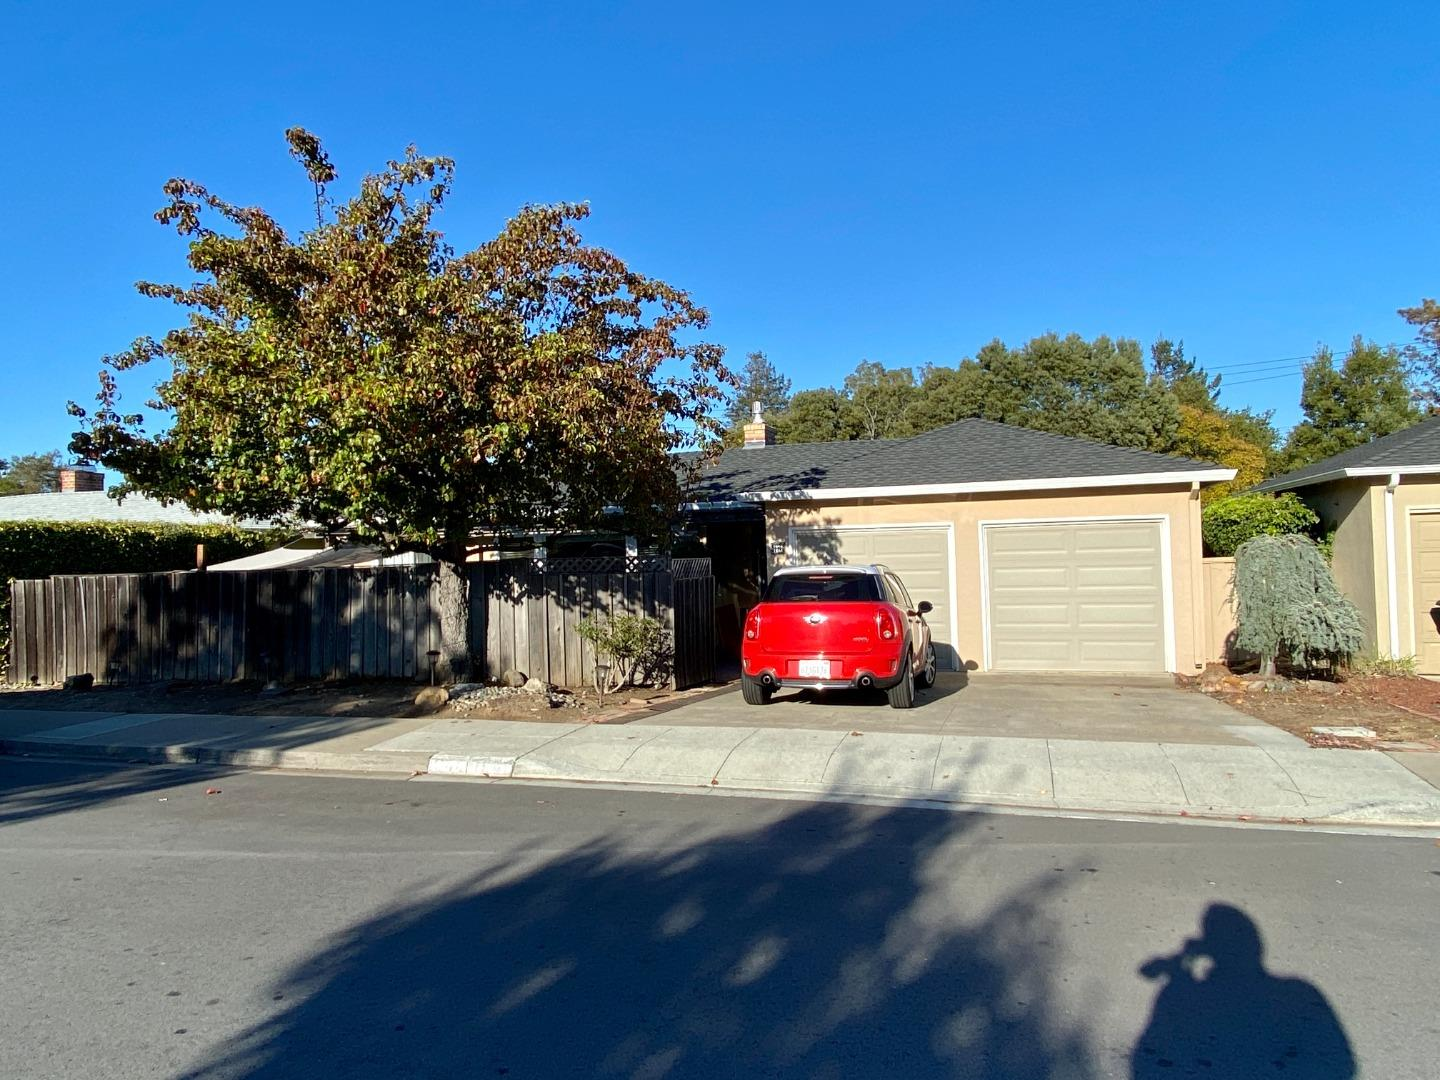 Fantastic rear unit of a duplex in Burlingame available for immediate occupancy! This wonderful unit features an updated kitchen & bathoom, hardwood flooring throughout, 2 bedrooms, 1 full bathroom, wood burning fireplace, washer & dryer in laundry area located off the kitchen, private back yard & patio area, and more!